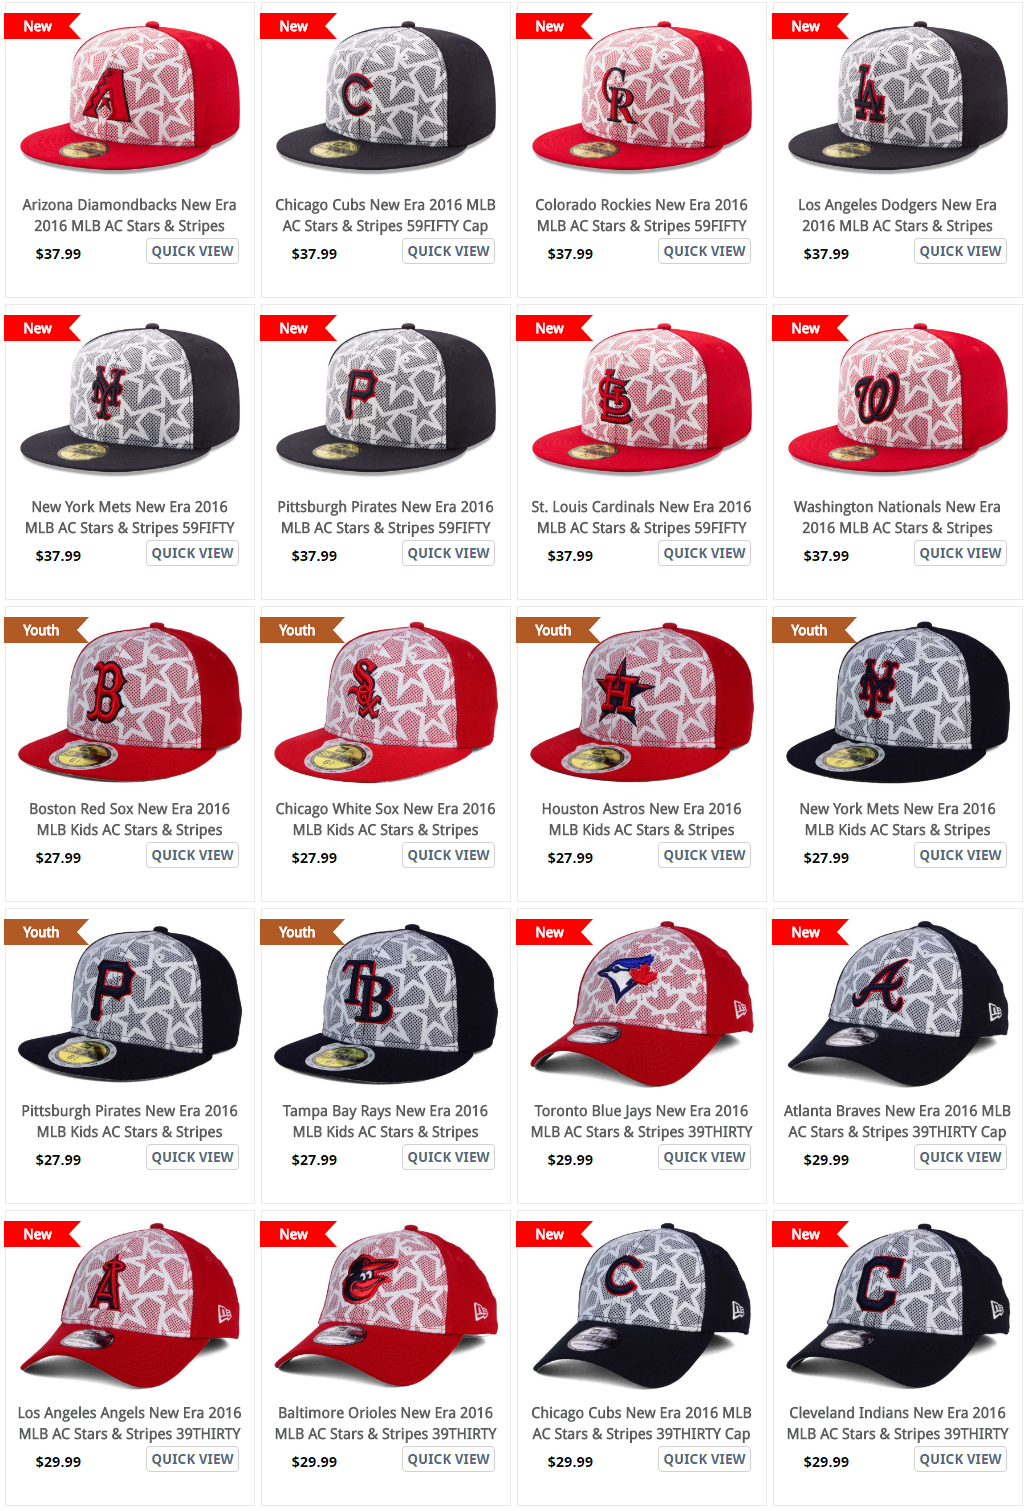 australia 4th of july stars hats from new era red and blue ce892 e5621 b89b841c0083